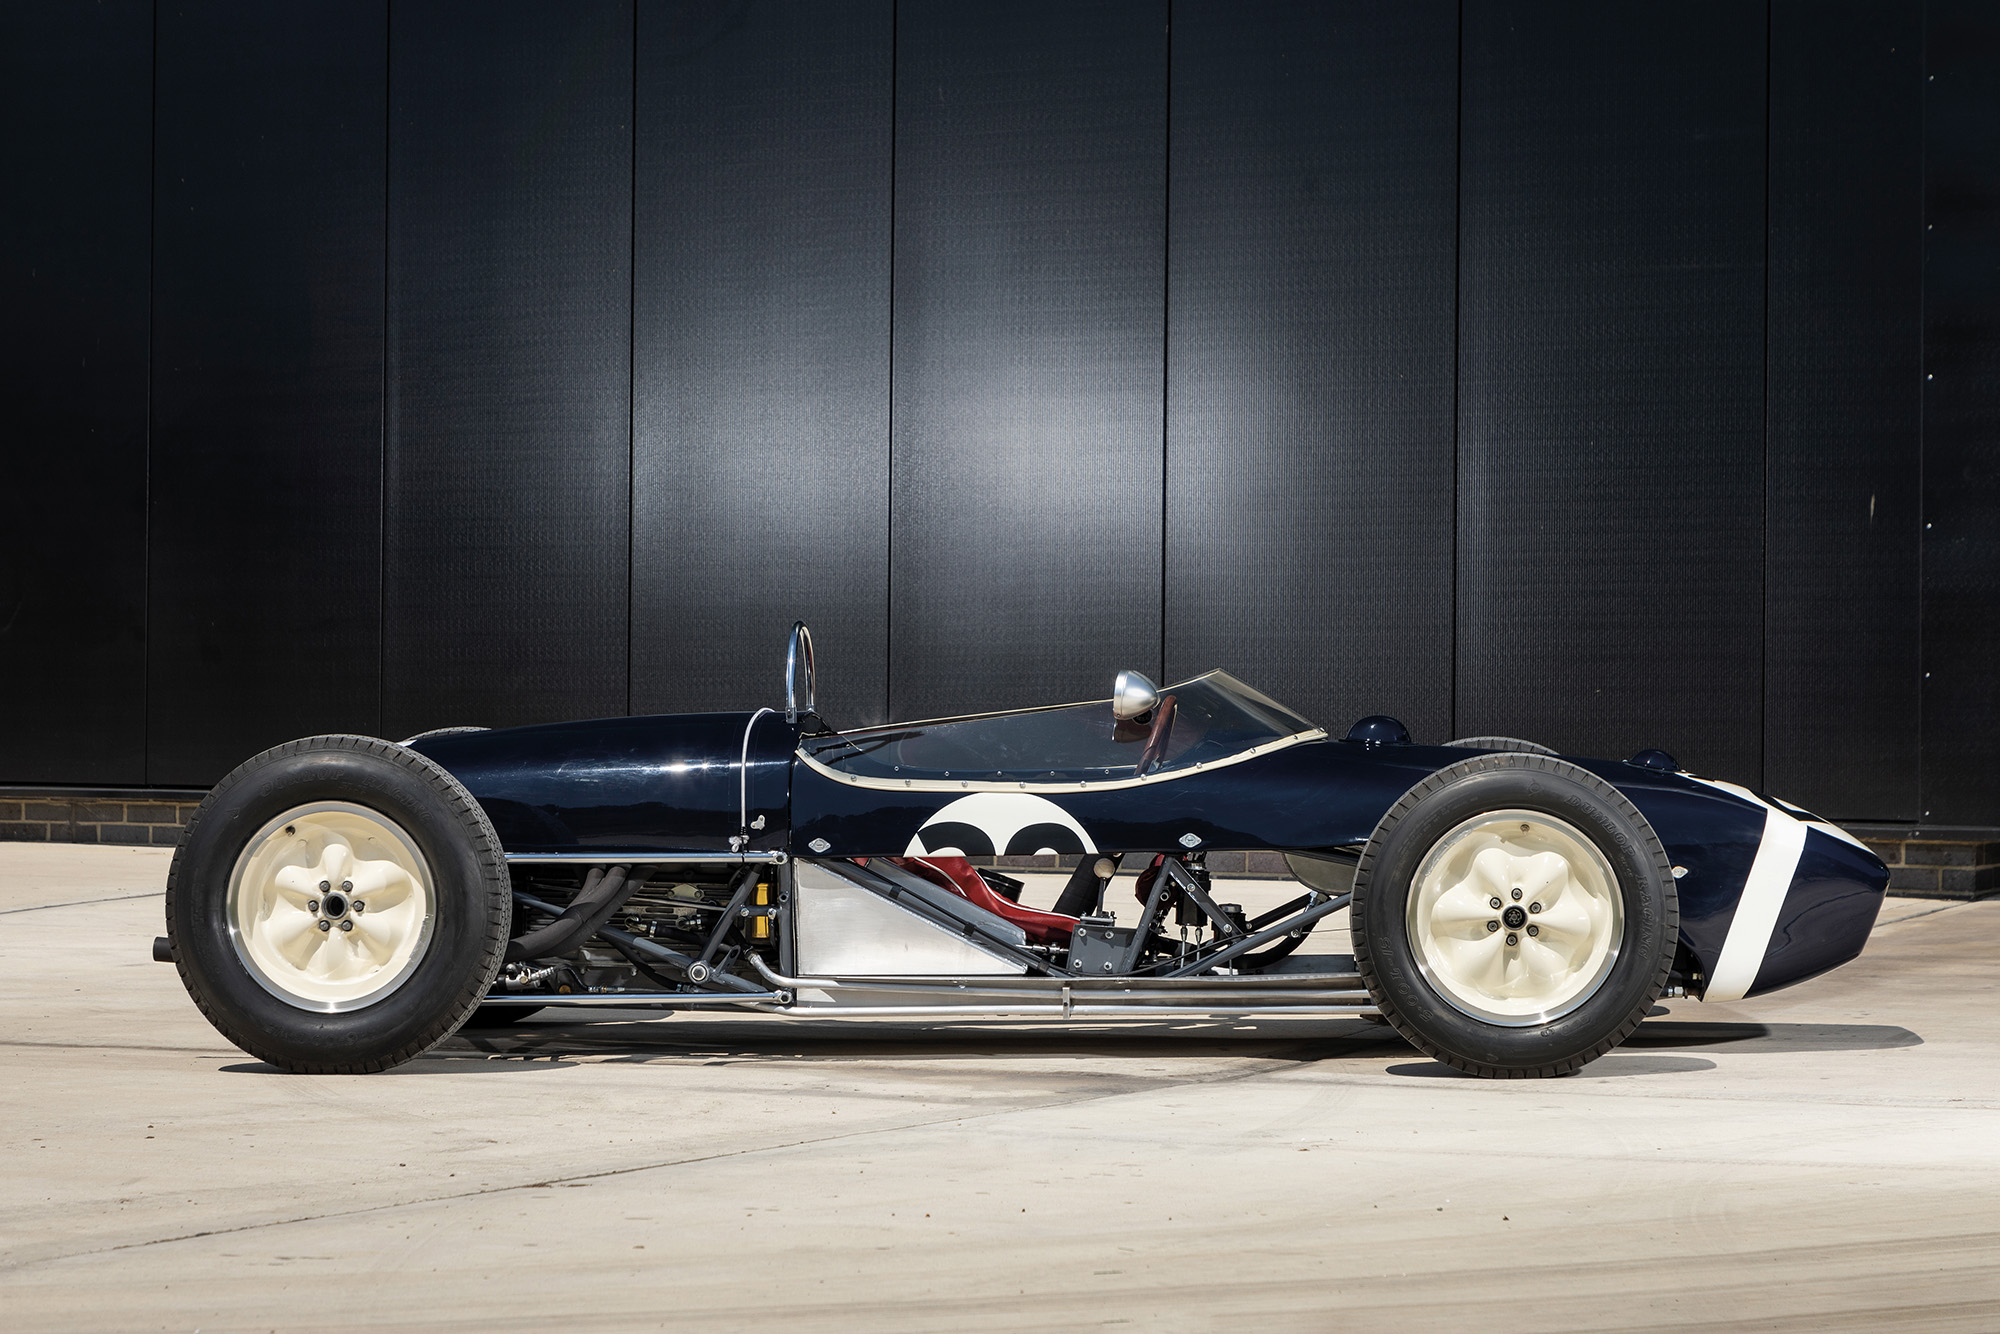 1961 Stirling Moss Monaco winning Lotus 18 side